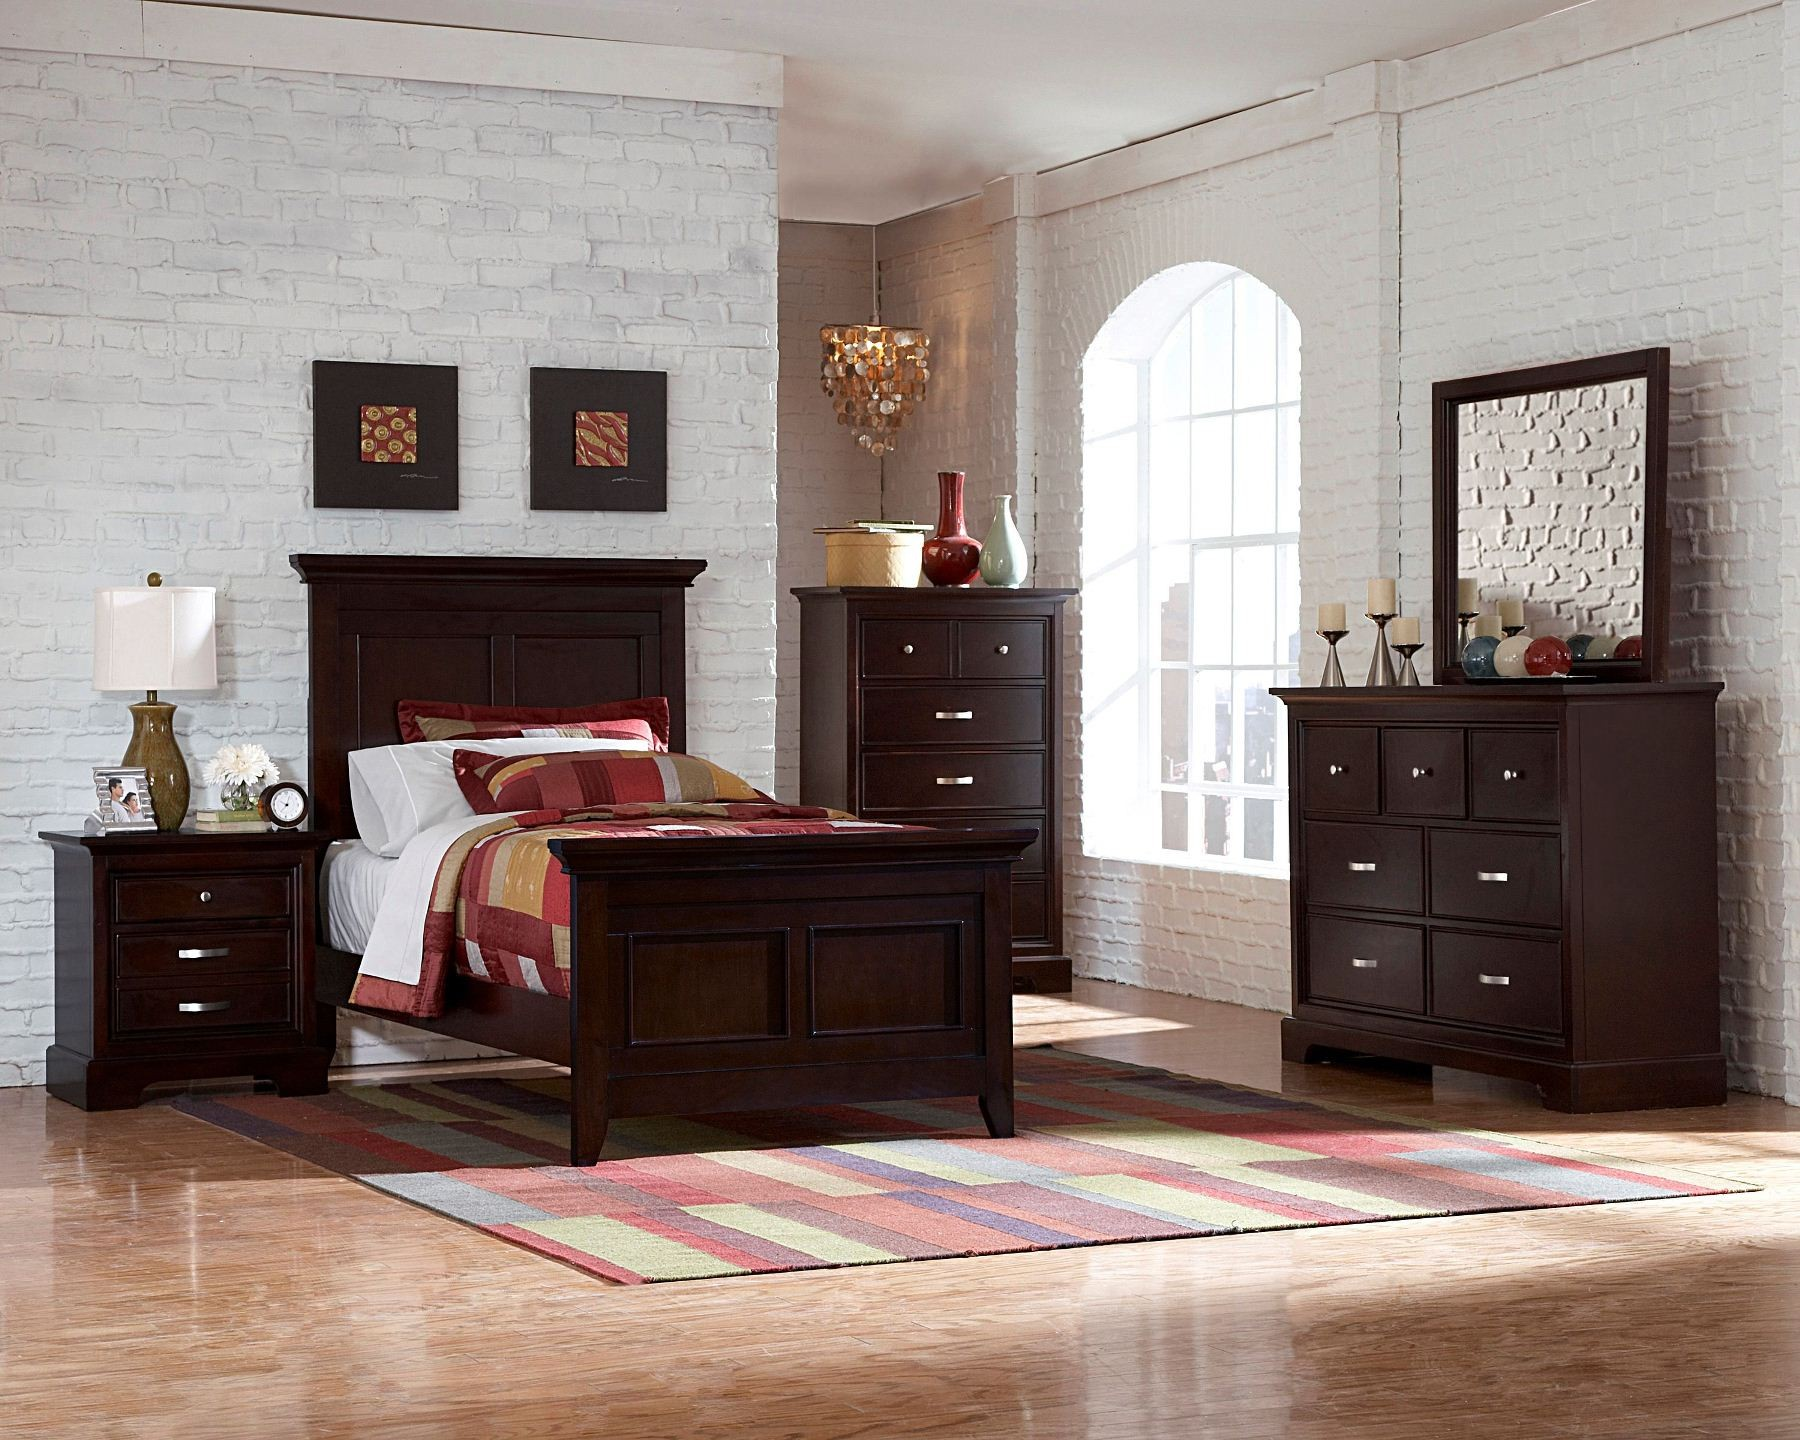 Glamour youth espresso panel bedroom set from homelegance - Cabeceras para cama ...